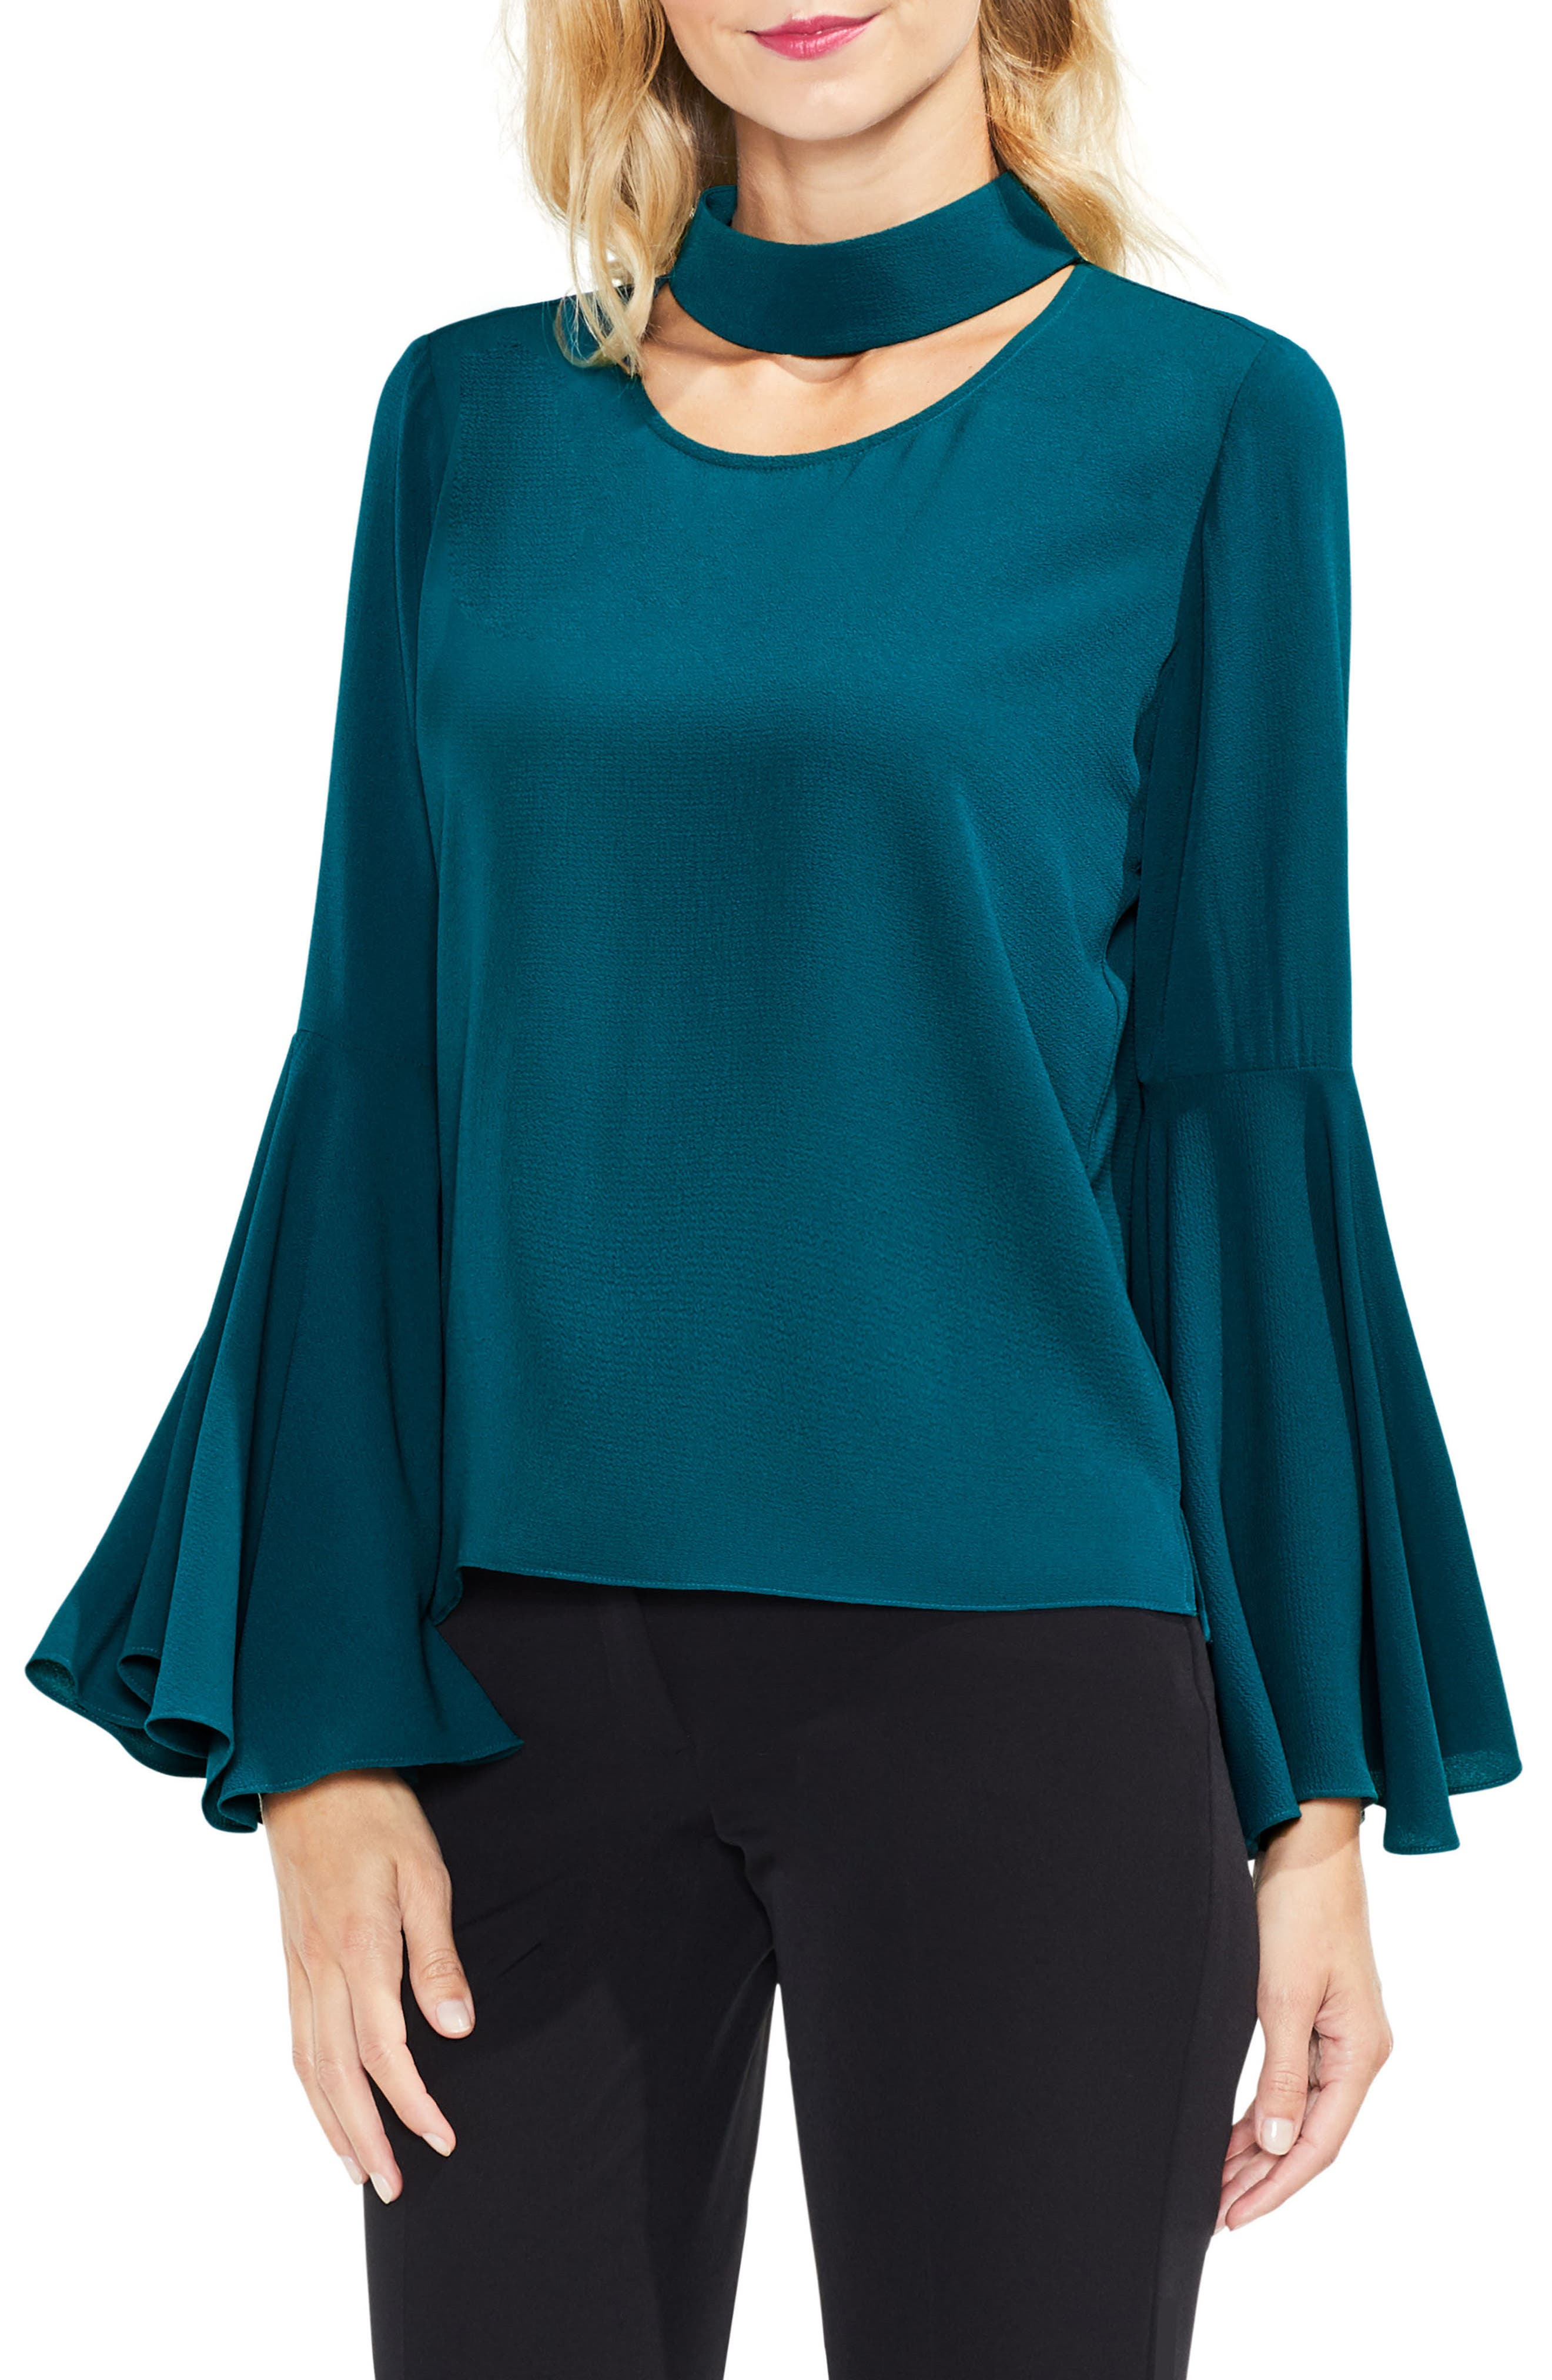 Bell Sleeve Choker Neck Blouse,                             Main thumbnail 1, color,                             Dark Peacock